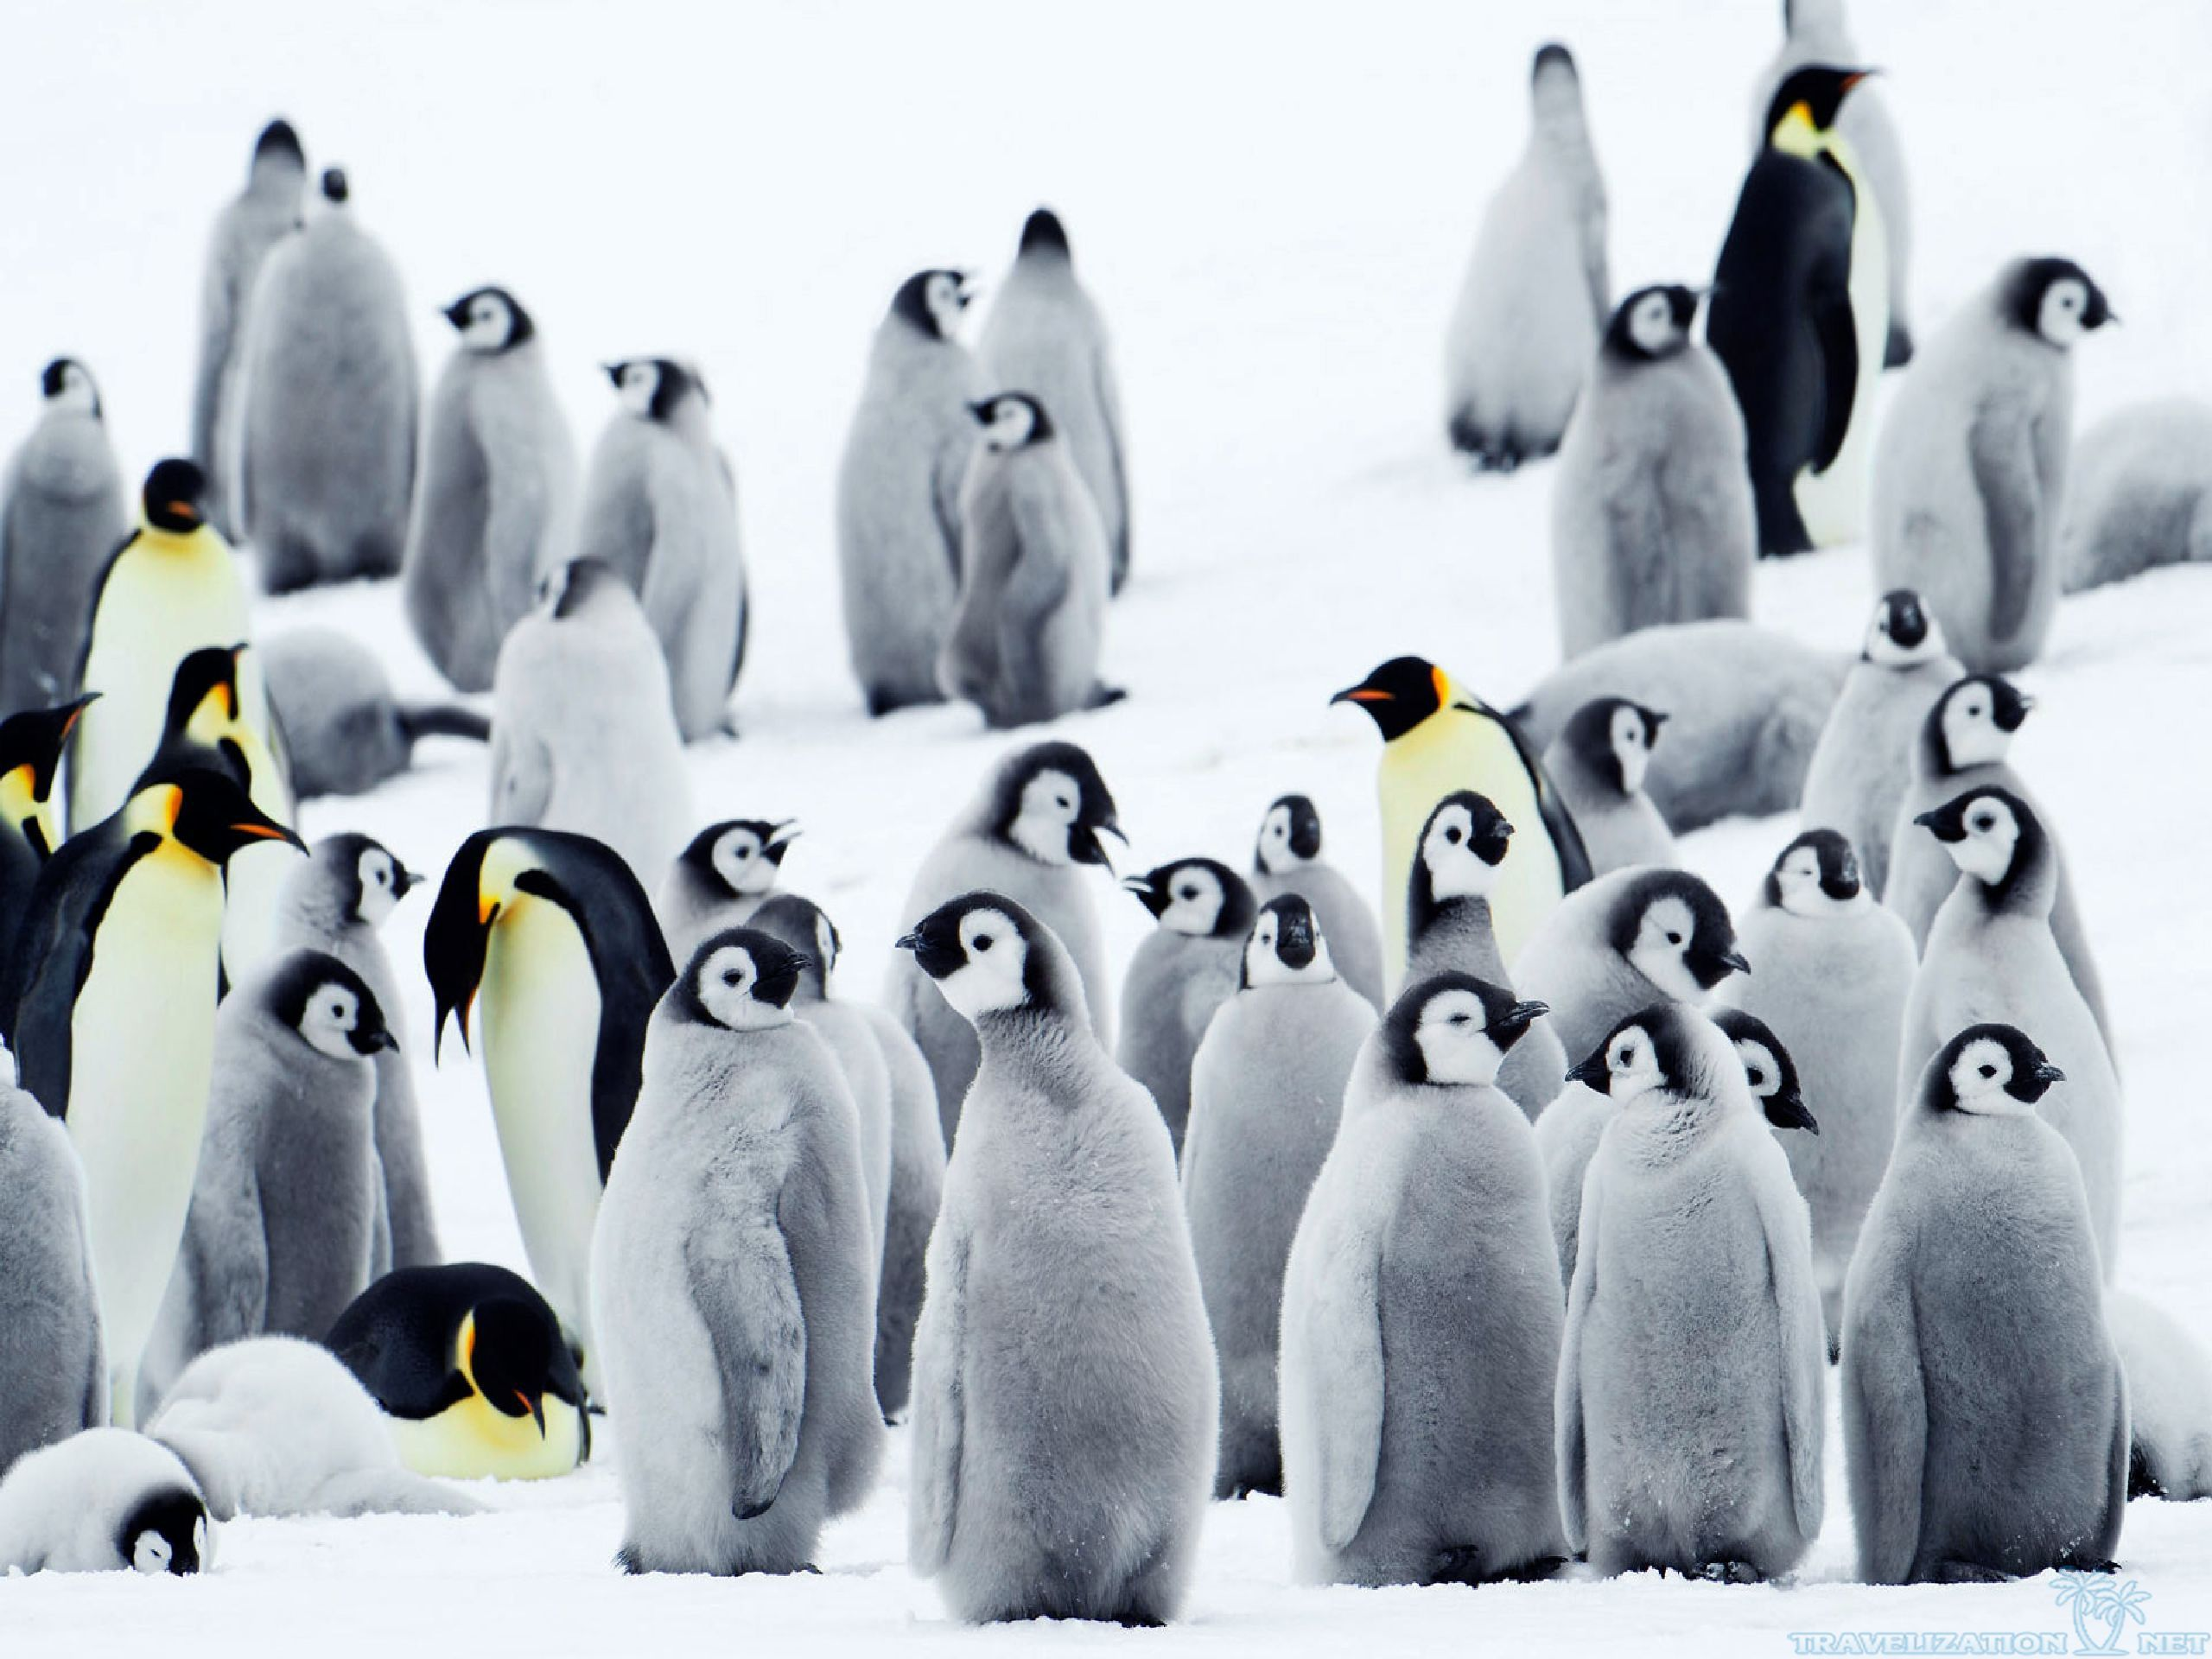 Cute penguins cute mighty pictures - Free Penguin Wallpaper X